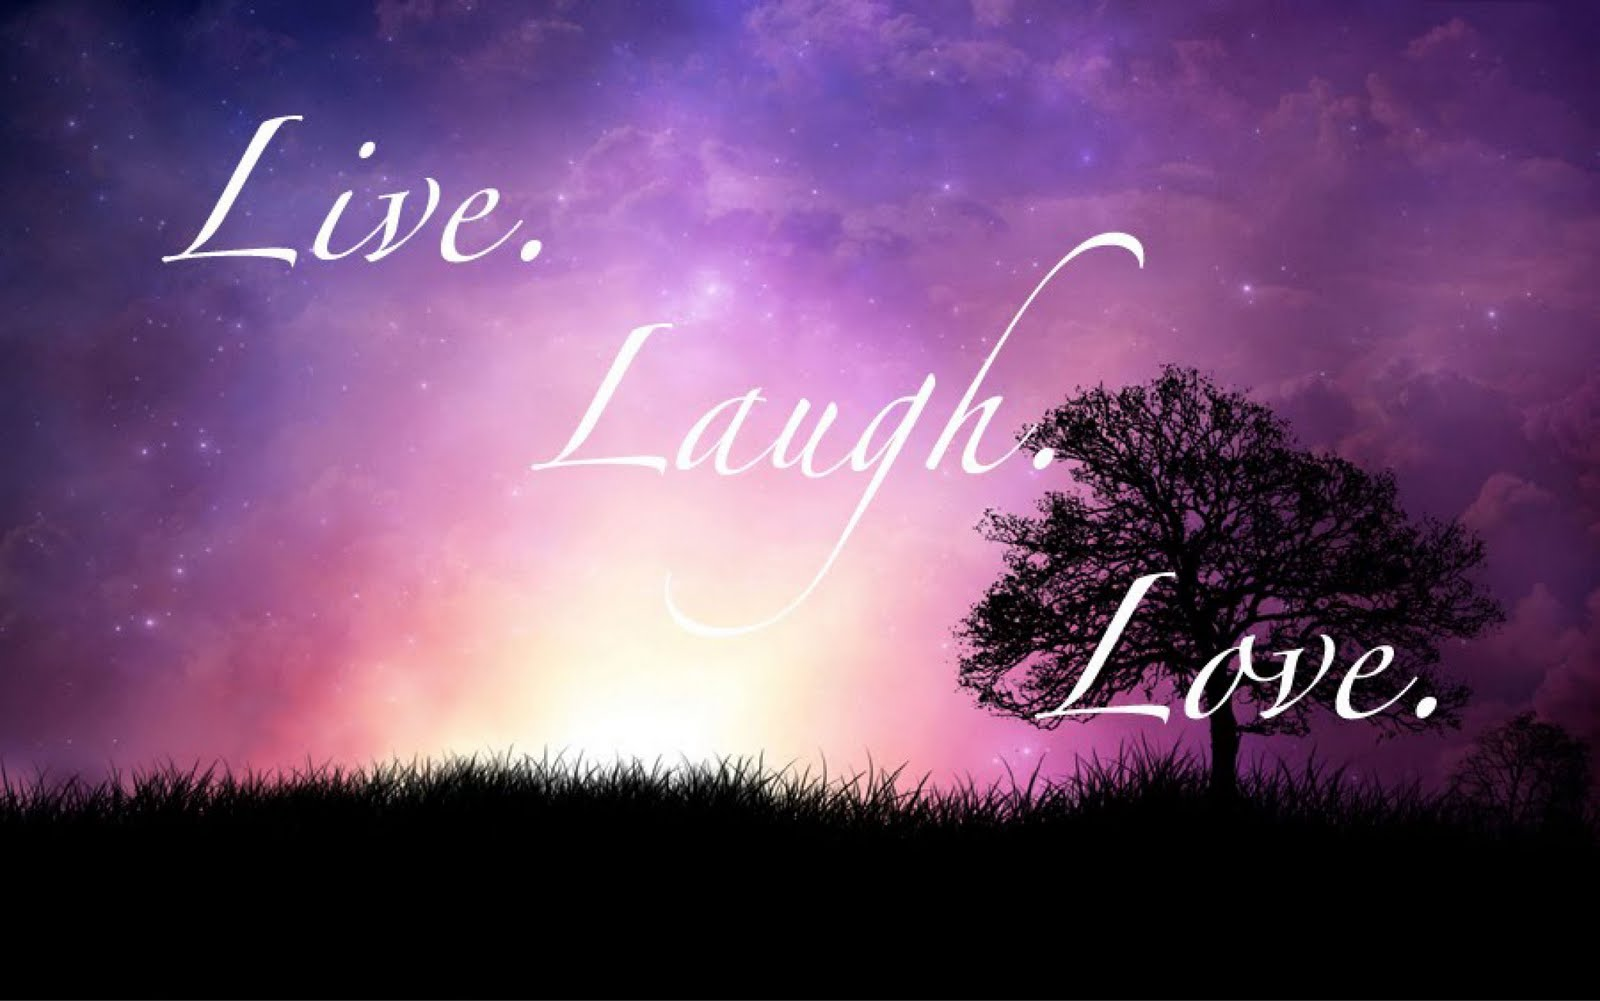 Wallpaper Love Live Tumblr : Live Laugh Love Desktop Wallpaper - WallpaperSafari